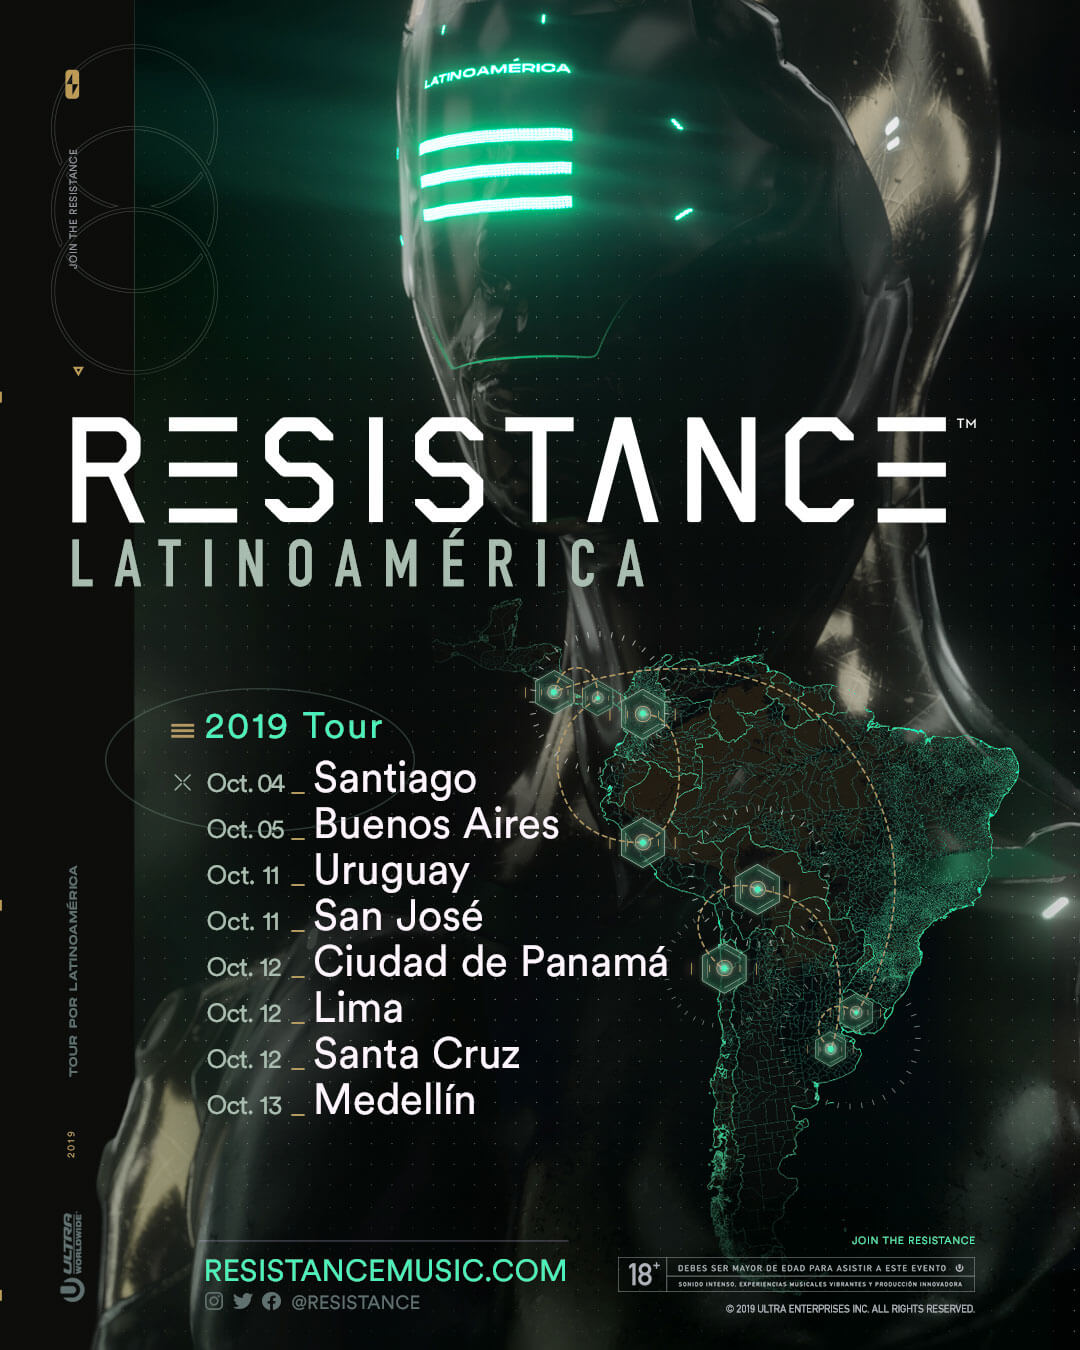 RESISTANCE Closes in on 8-City Latin America Tour